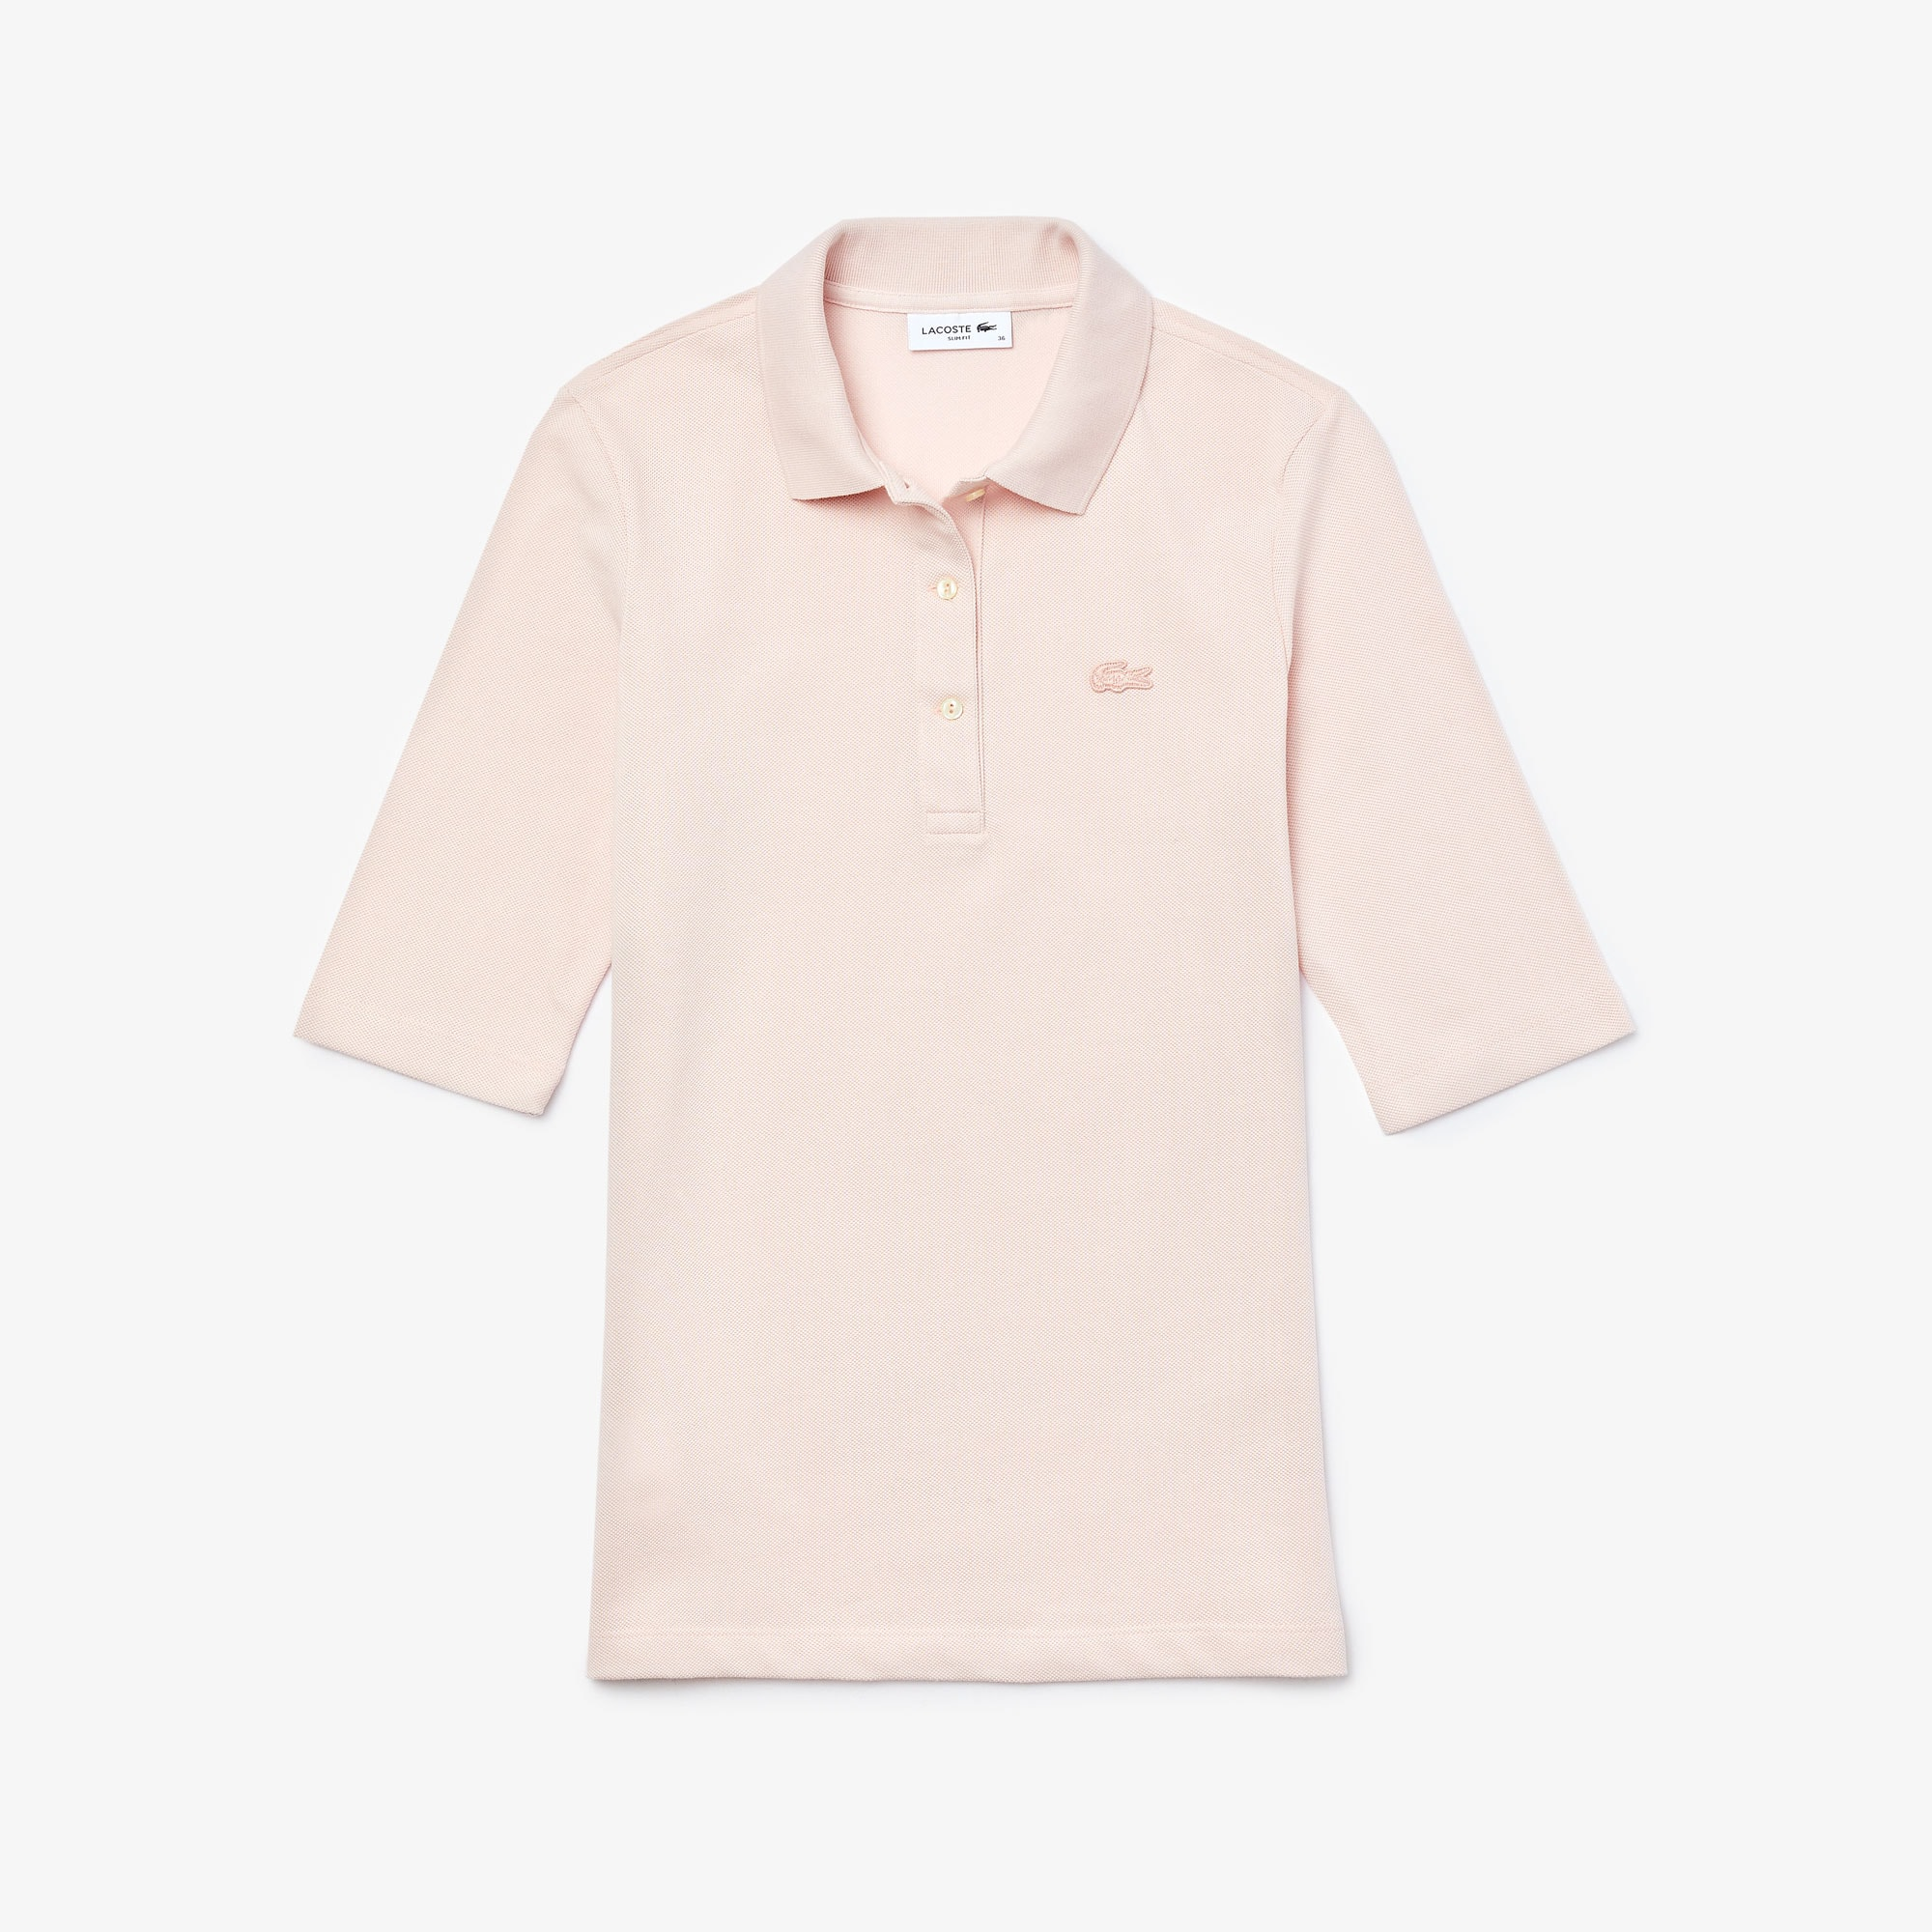 Women's Classic-Fit Cotton Polo